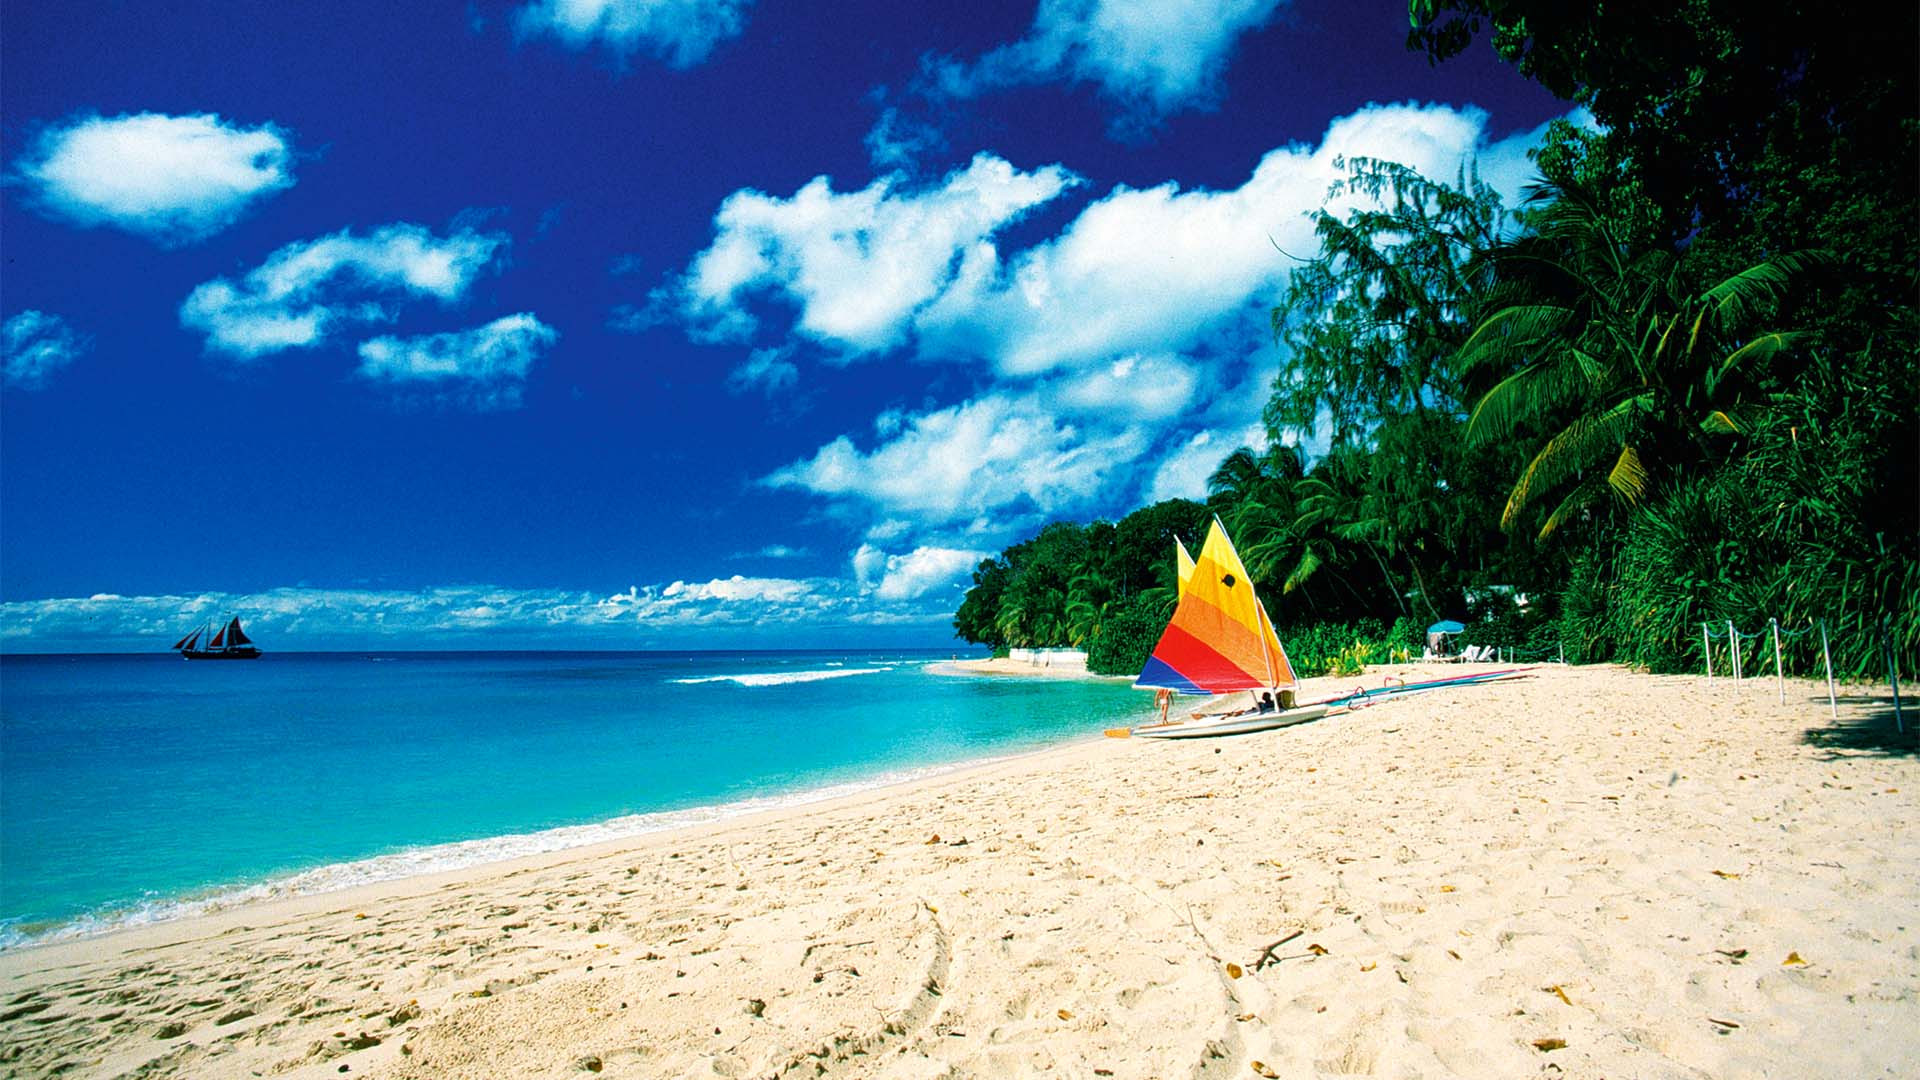 A beach in Barbados with a colourful sailboat